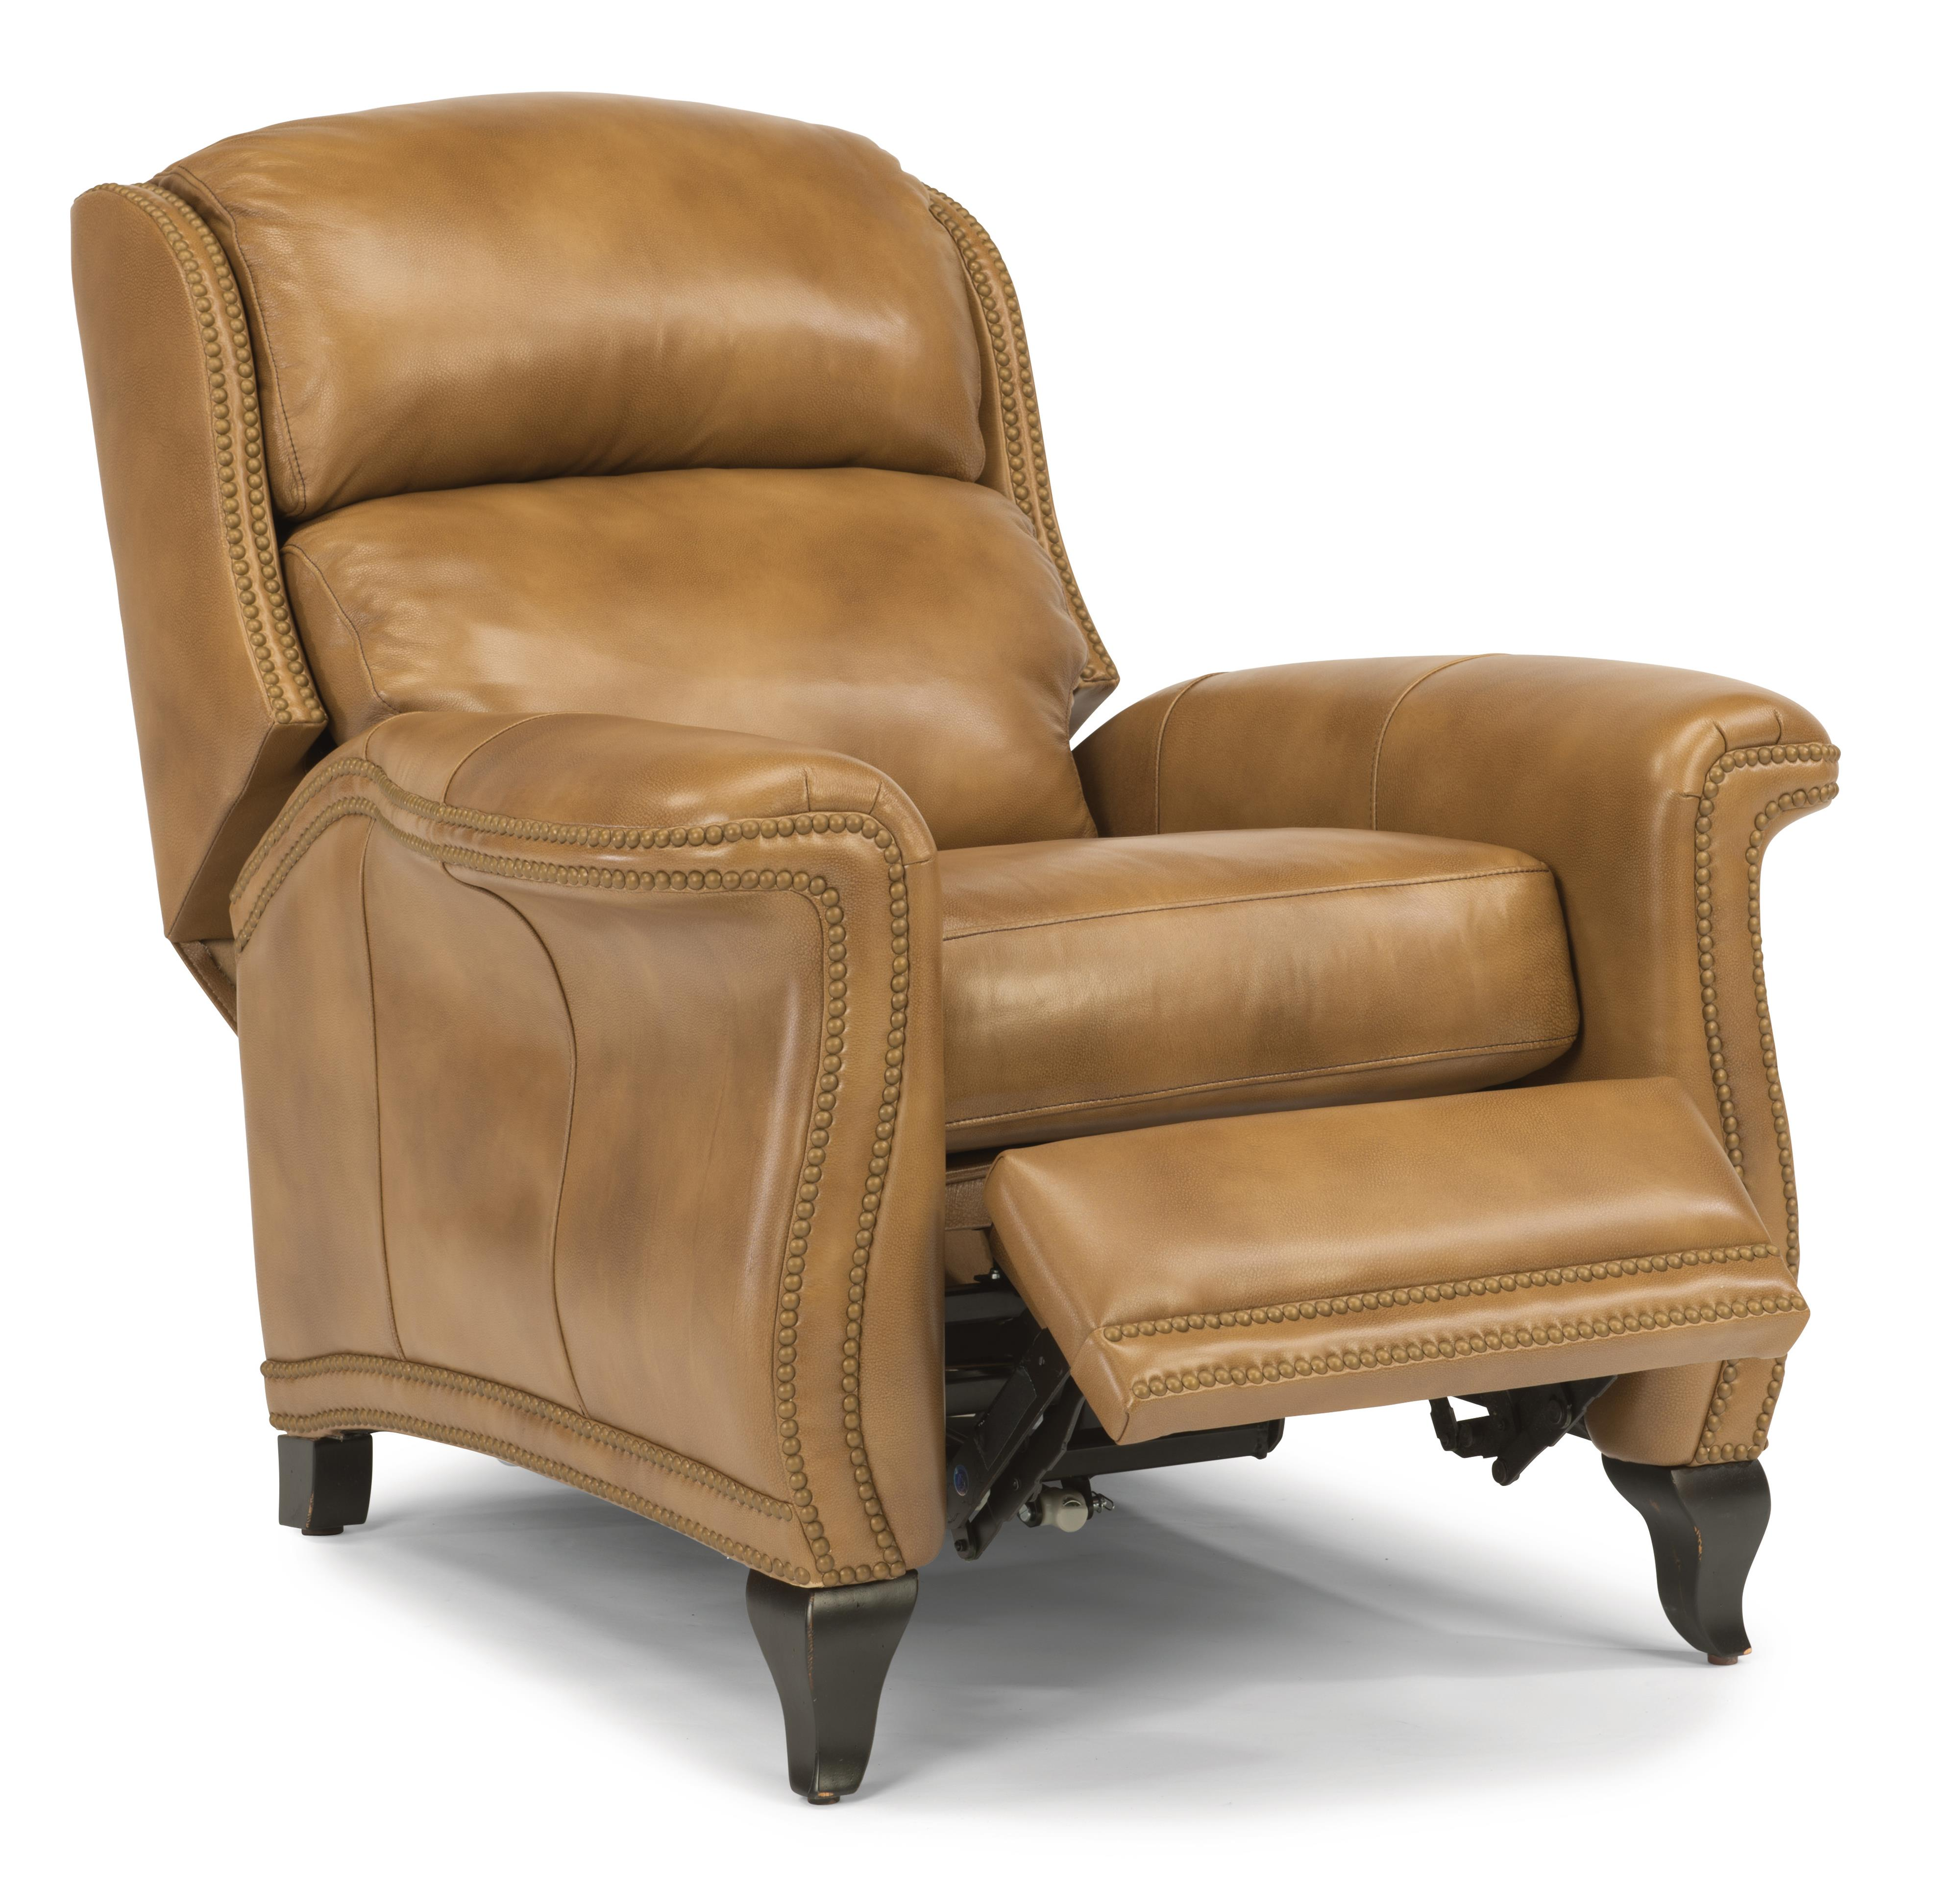 Flexsteel Latitudes-Sting Ray High Leg Recliner - Item Number: 1256-50P-LSP-82